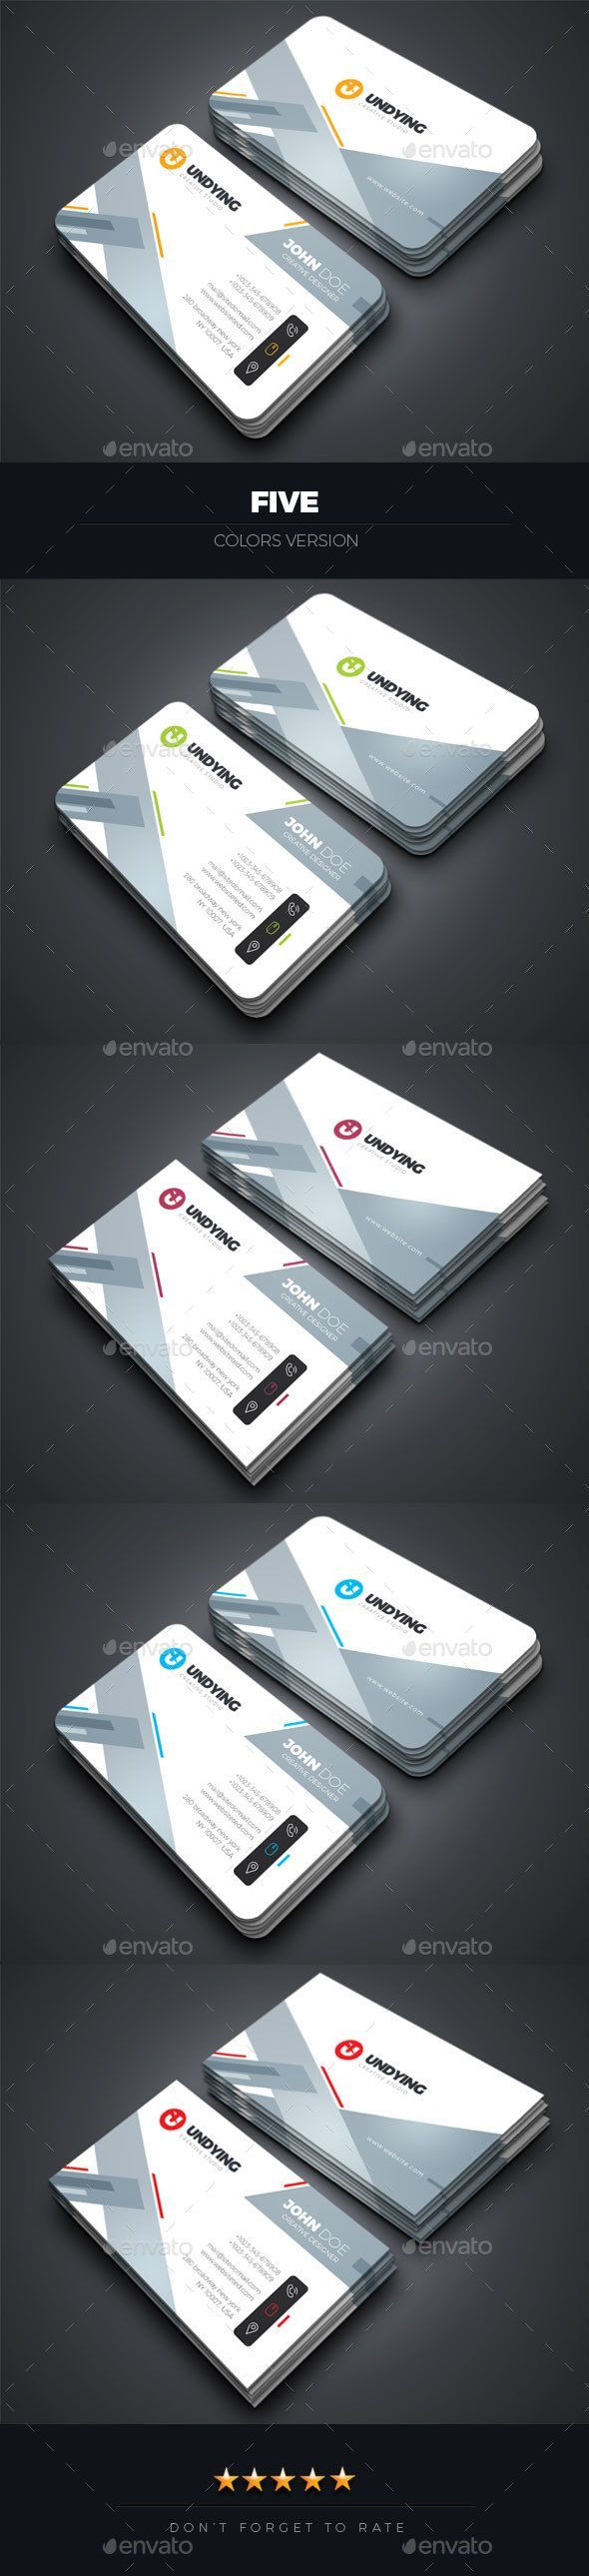 The 25 best business card maker ideas on pinterest card maker business card corporate business cards download here httpsgraphicriver magicingreecefo Gallery